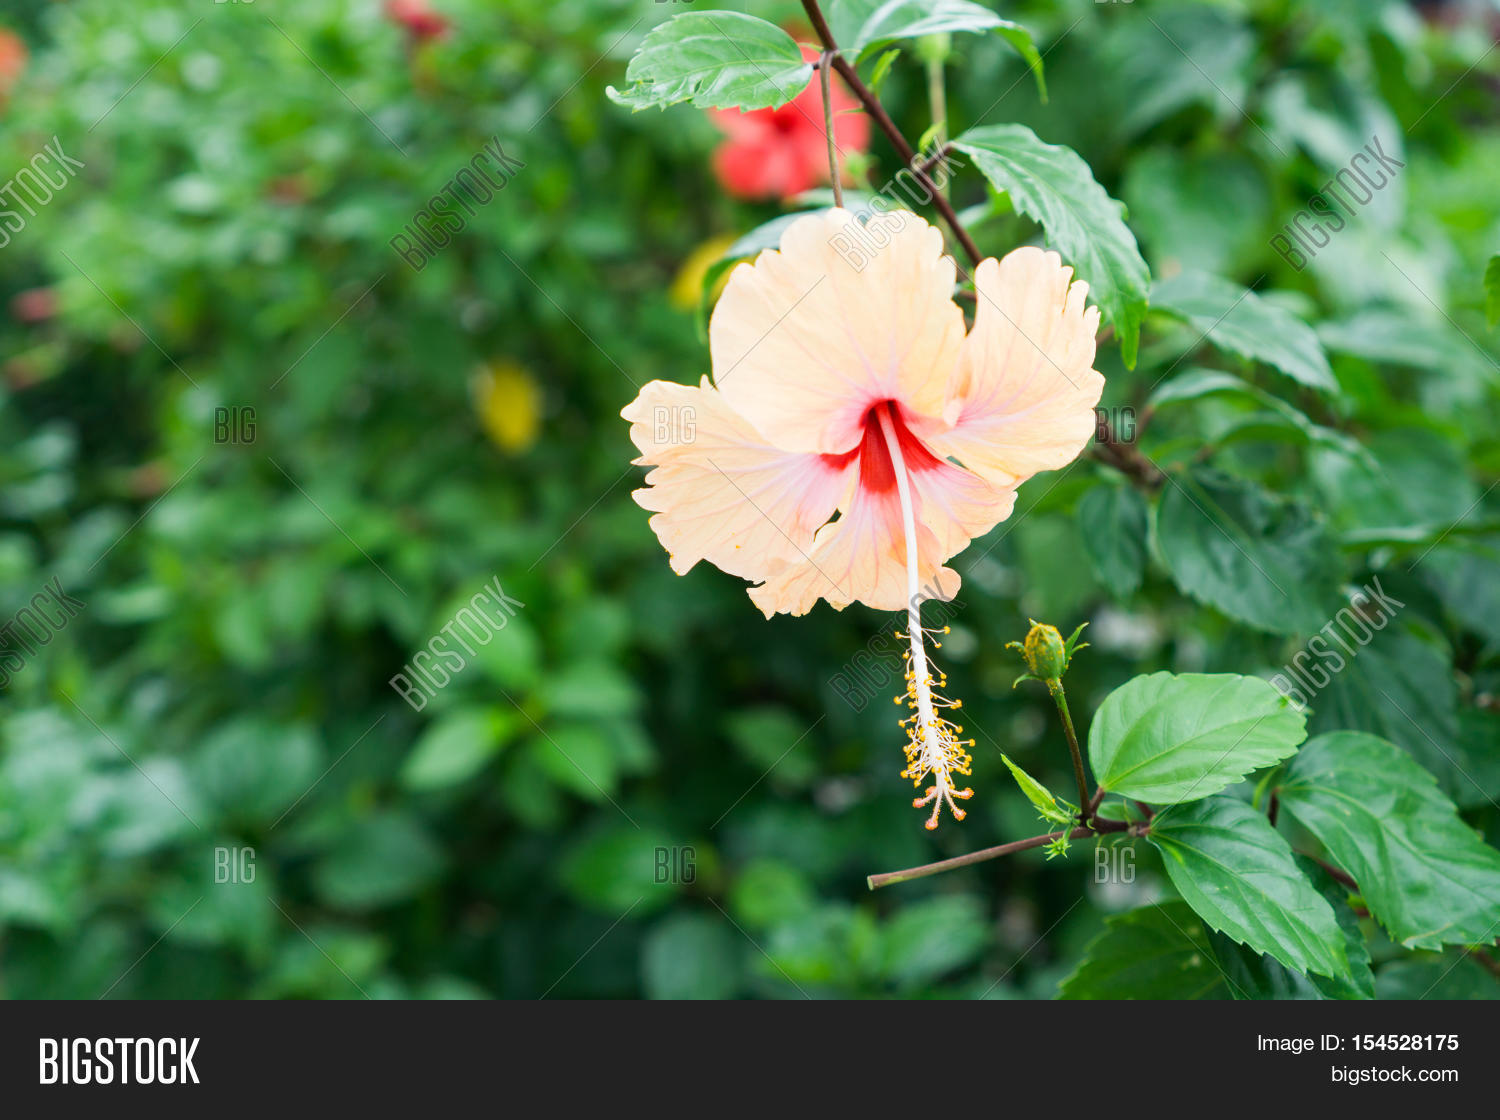 Pink chinese rose image photo free trial bigstock pink chinese rose shoe flower or a flower of red hibiscus with green leaves izmirmasajfo